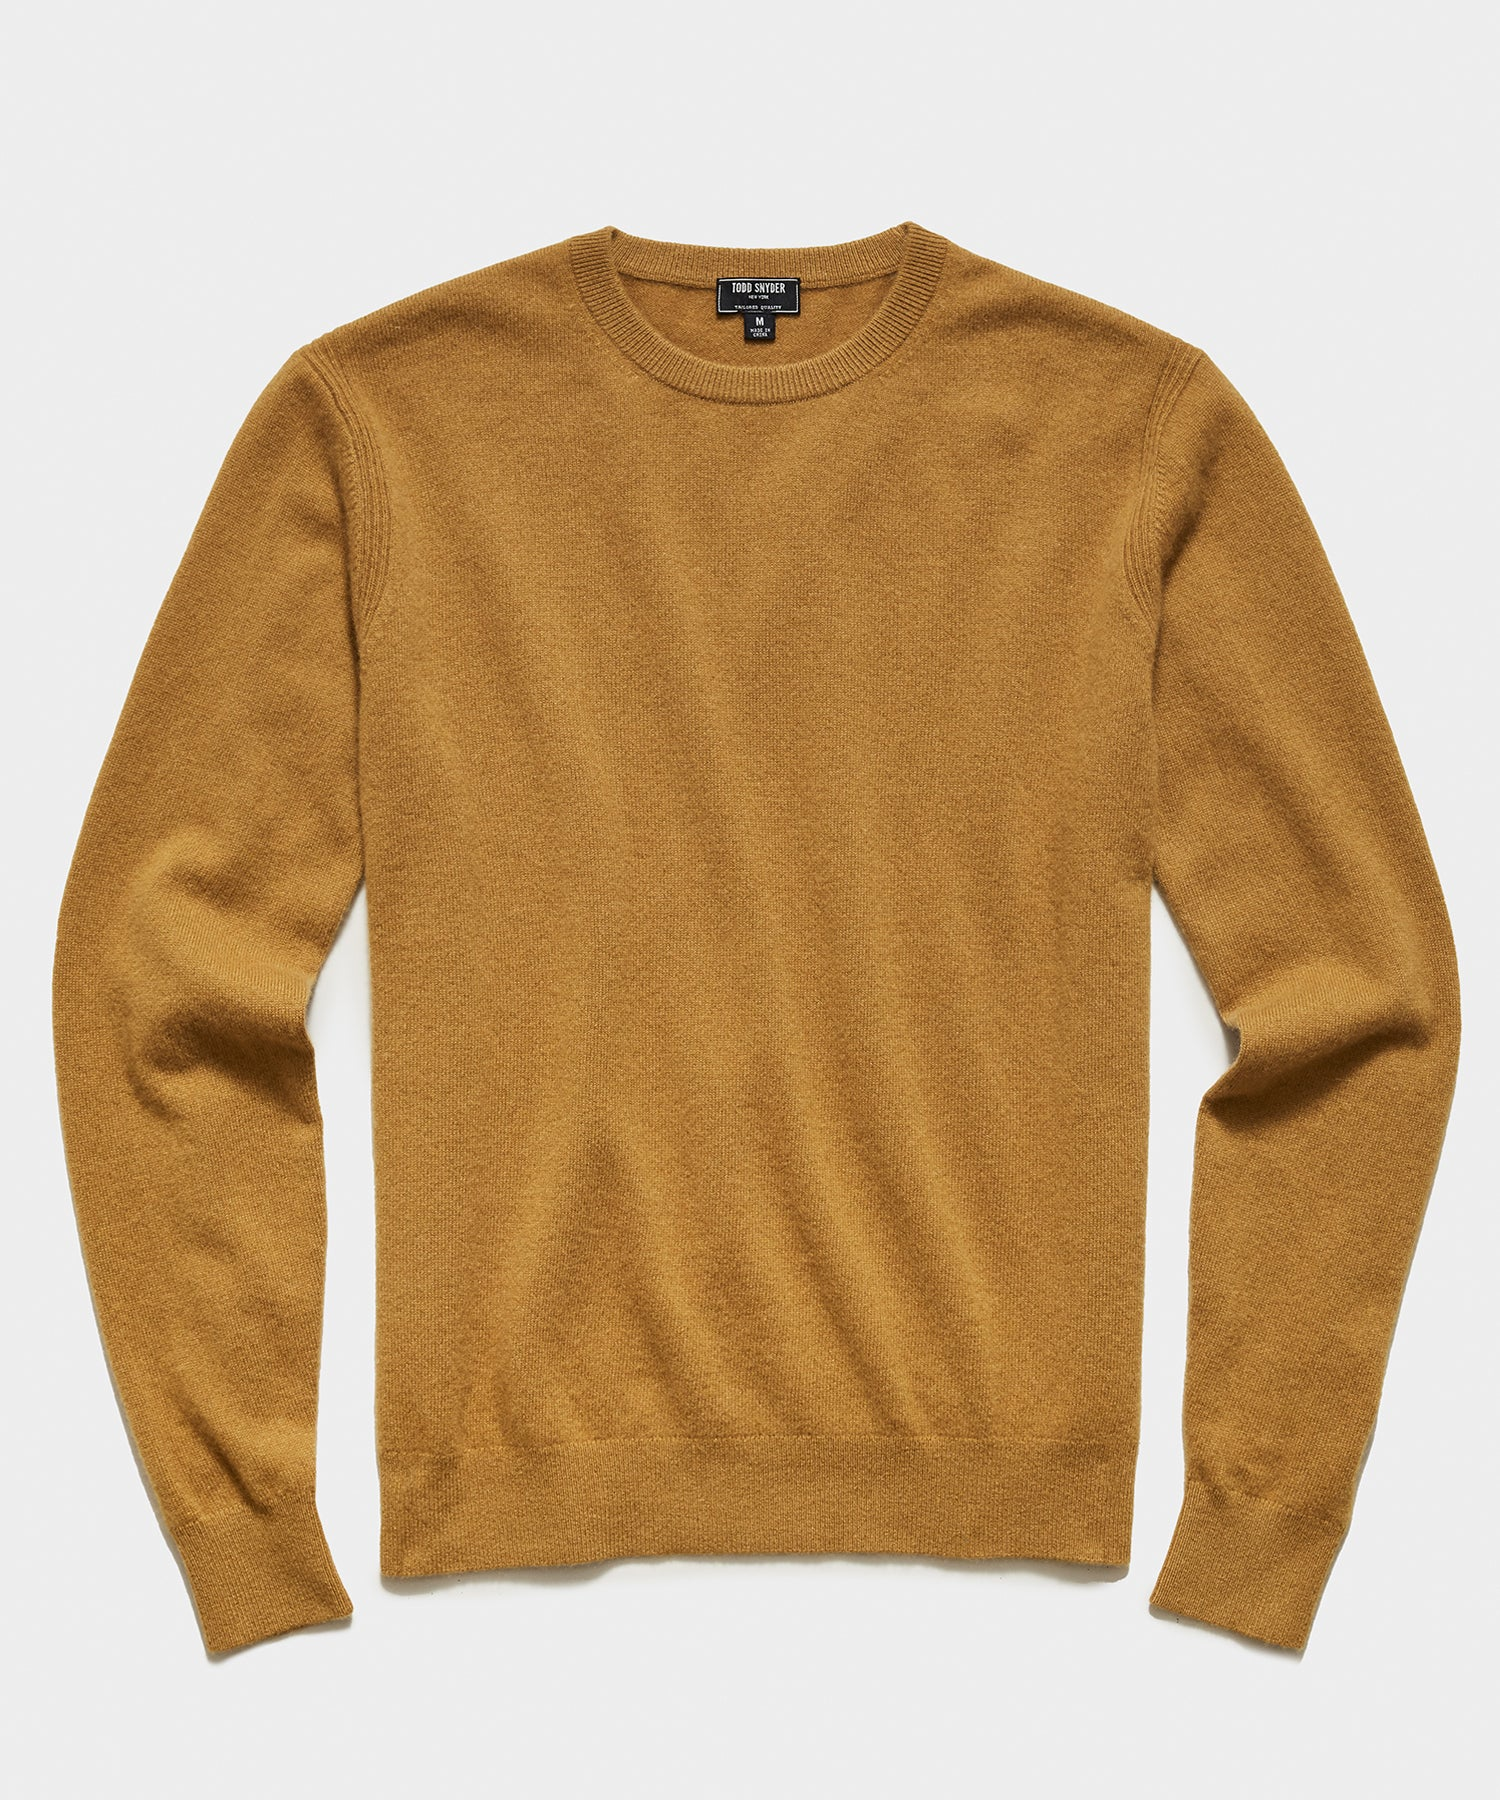 Cashmere Crewneck Sweater in Dark Honey